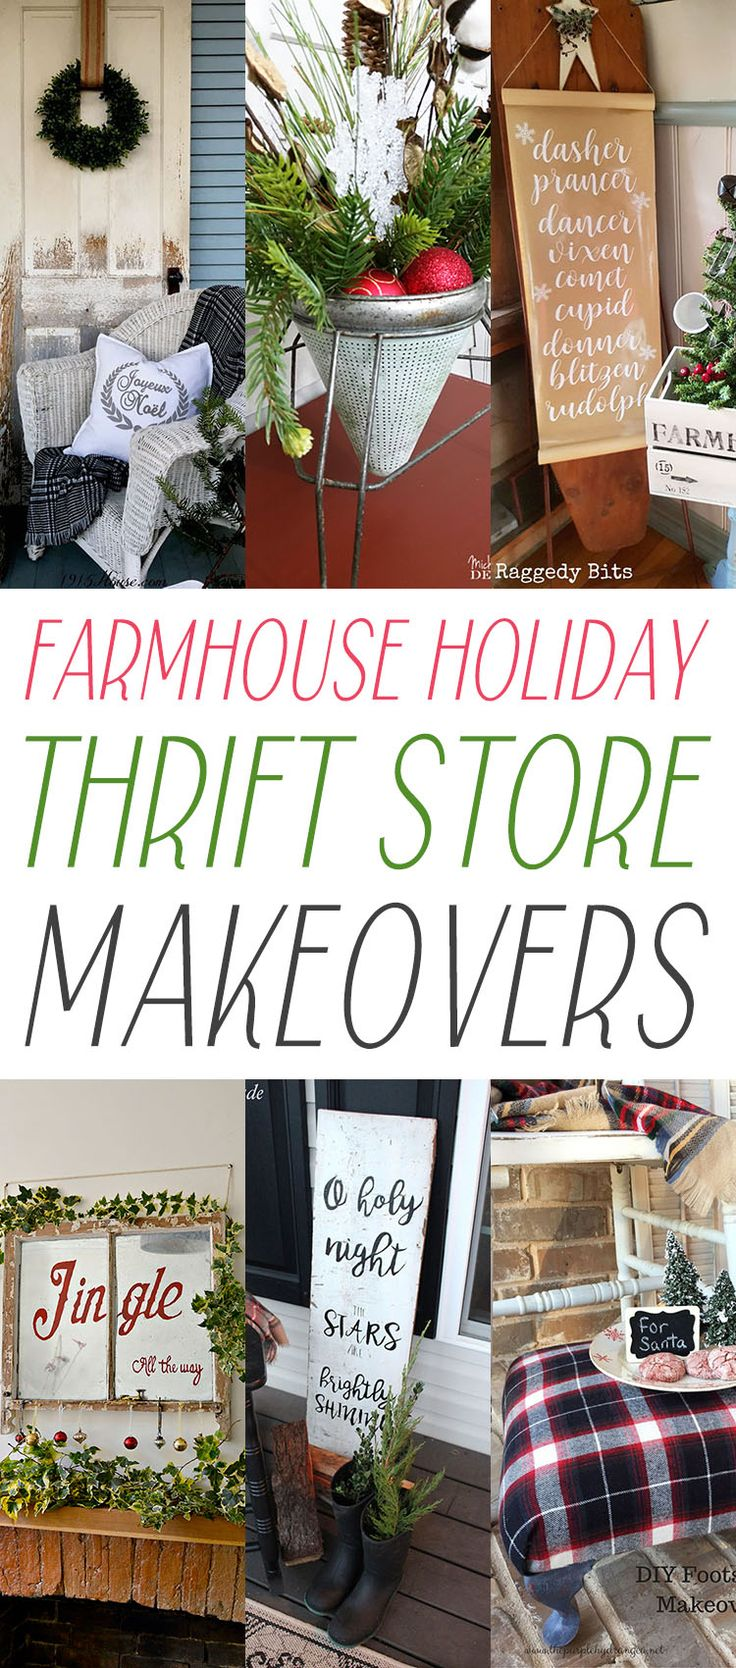 Farmhouse Holiday Thrift Store Makeovers you are going to love and be inspired by!